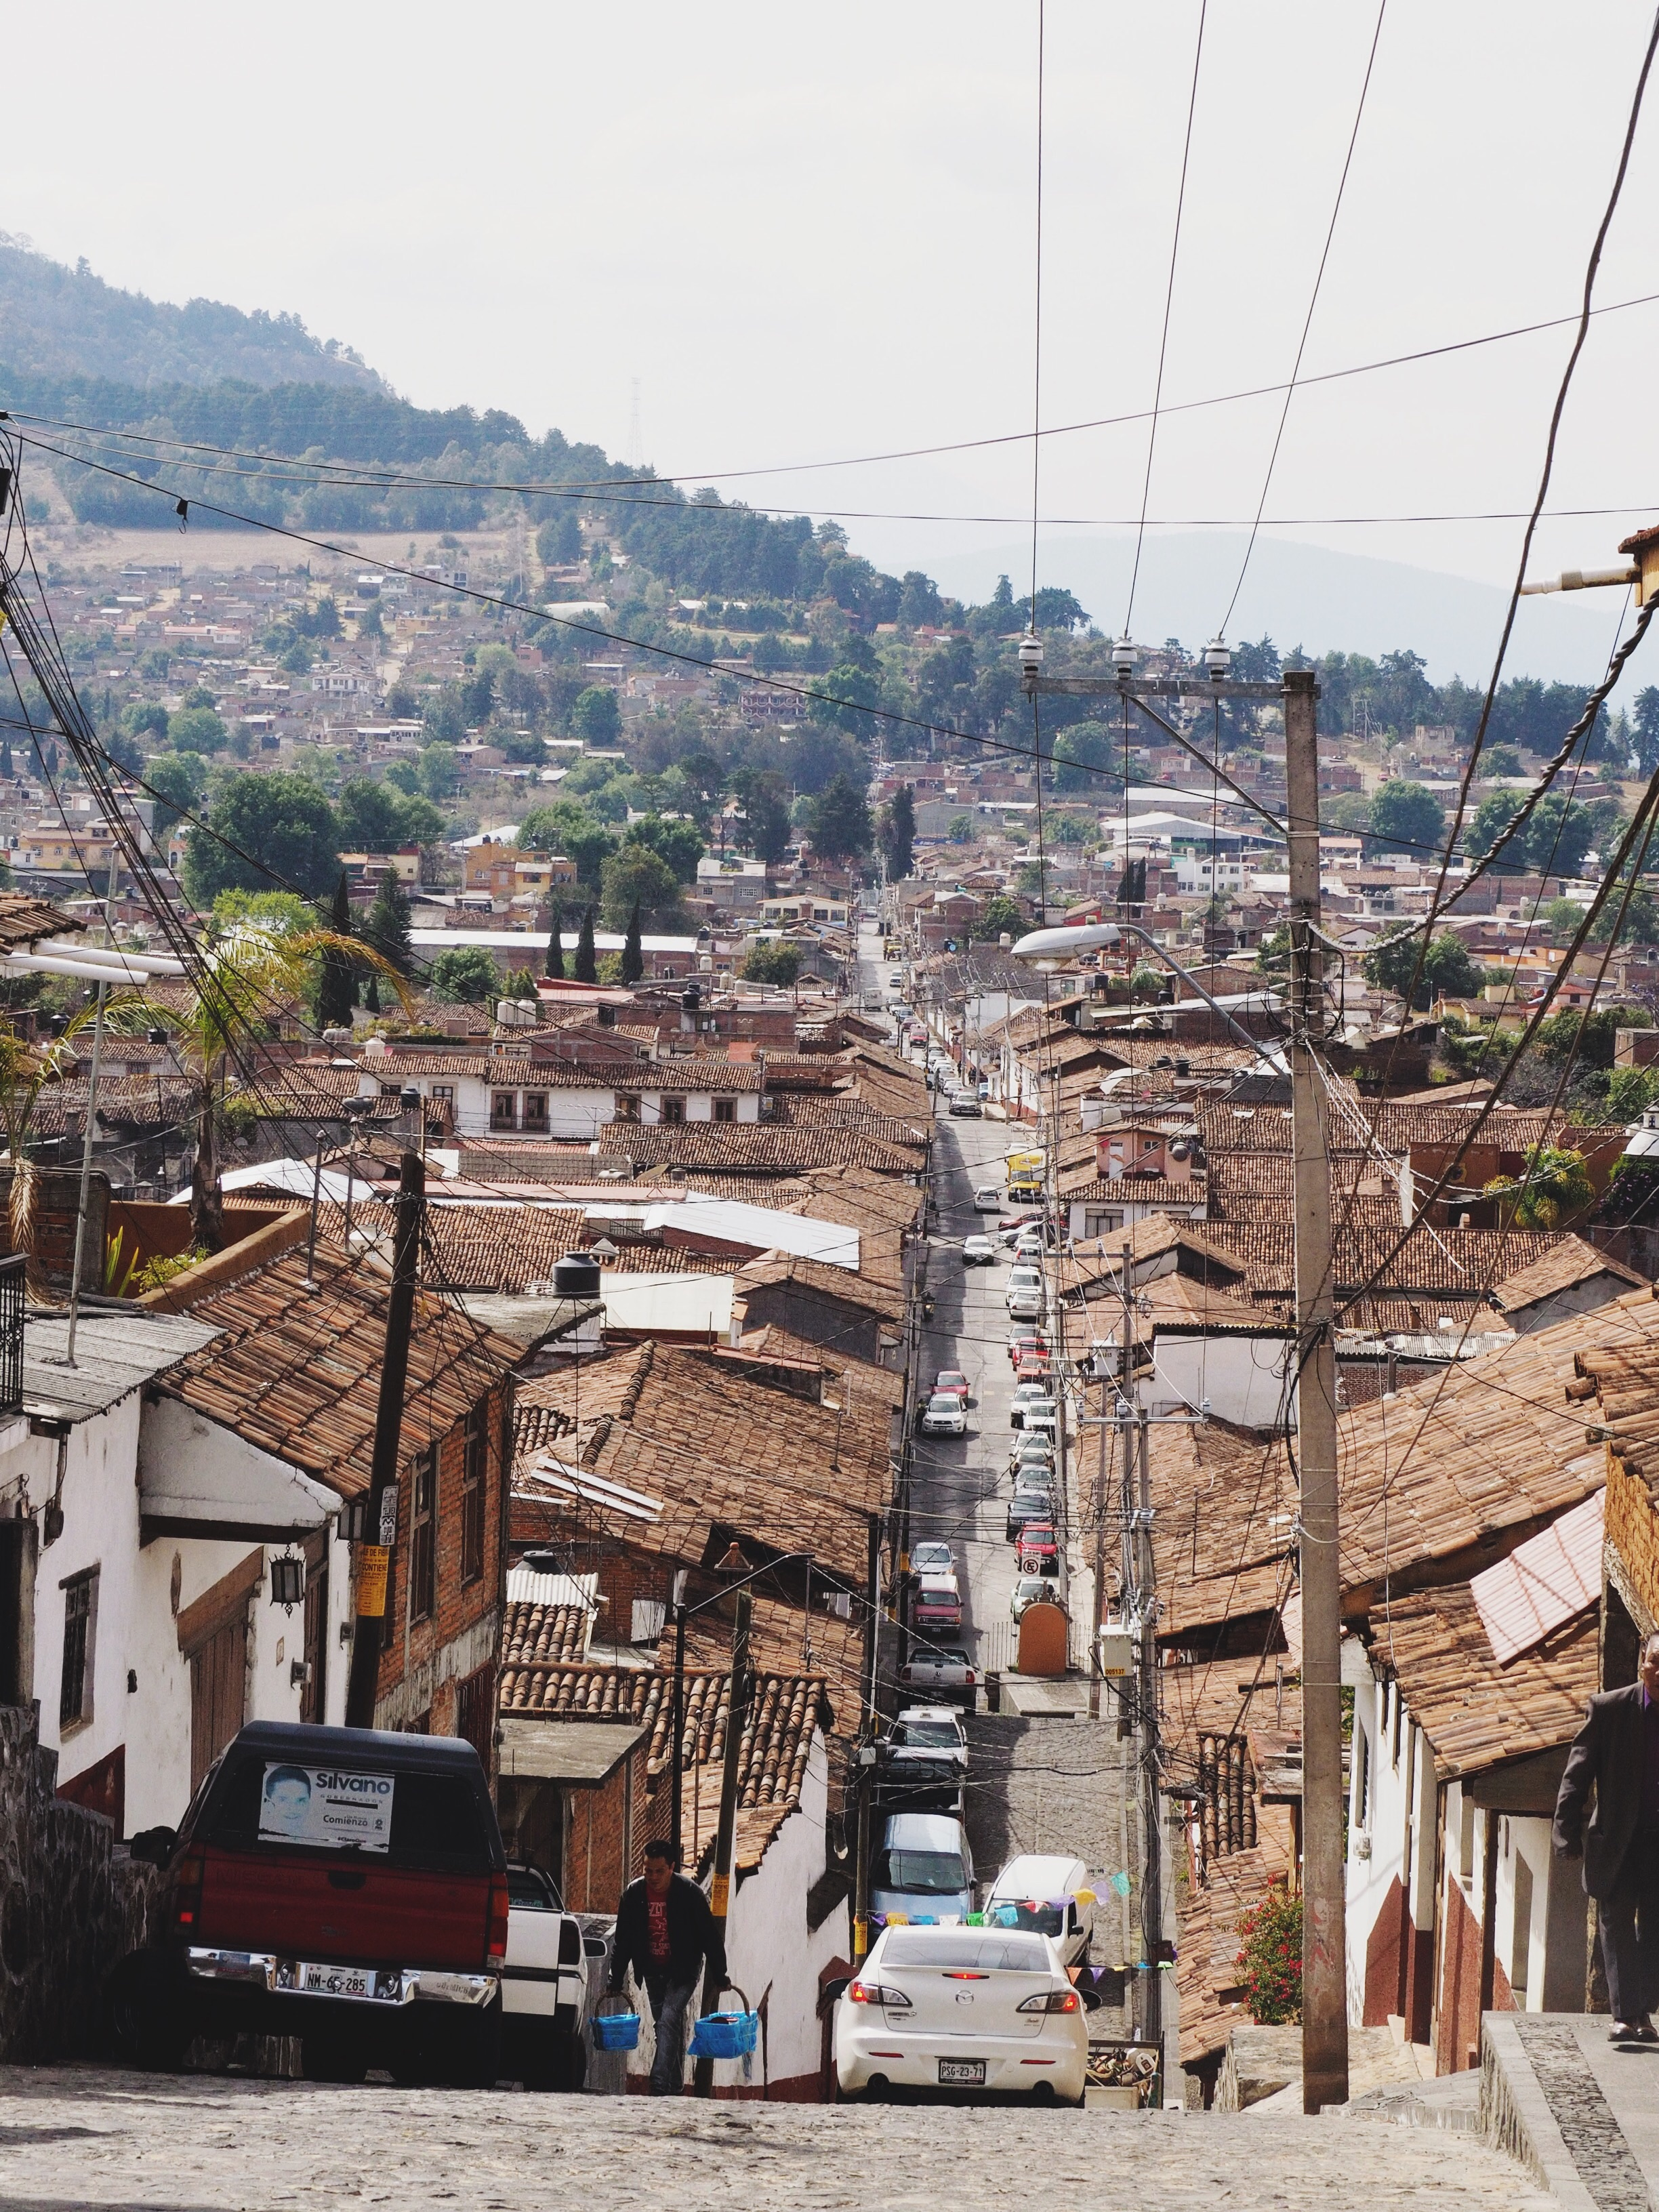 Pátzcuaro – very hilly and fun to cycle around!